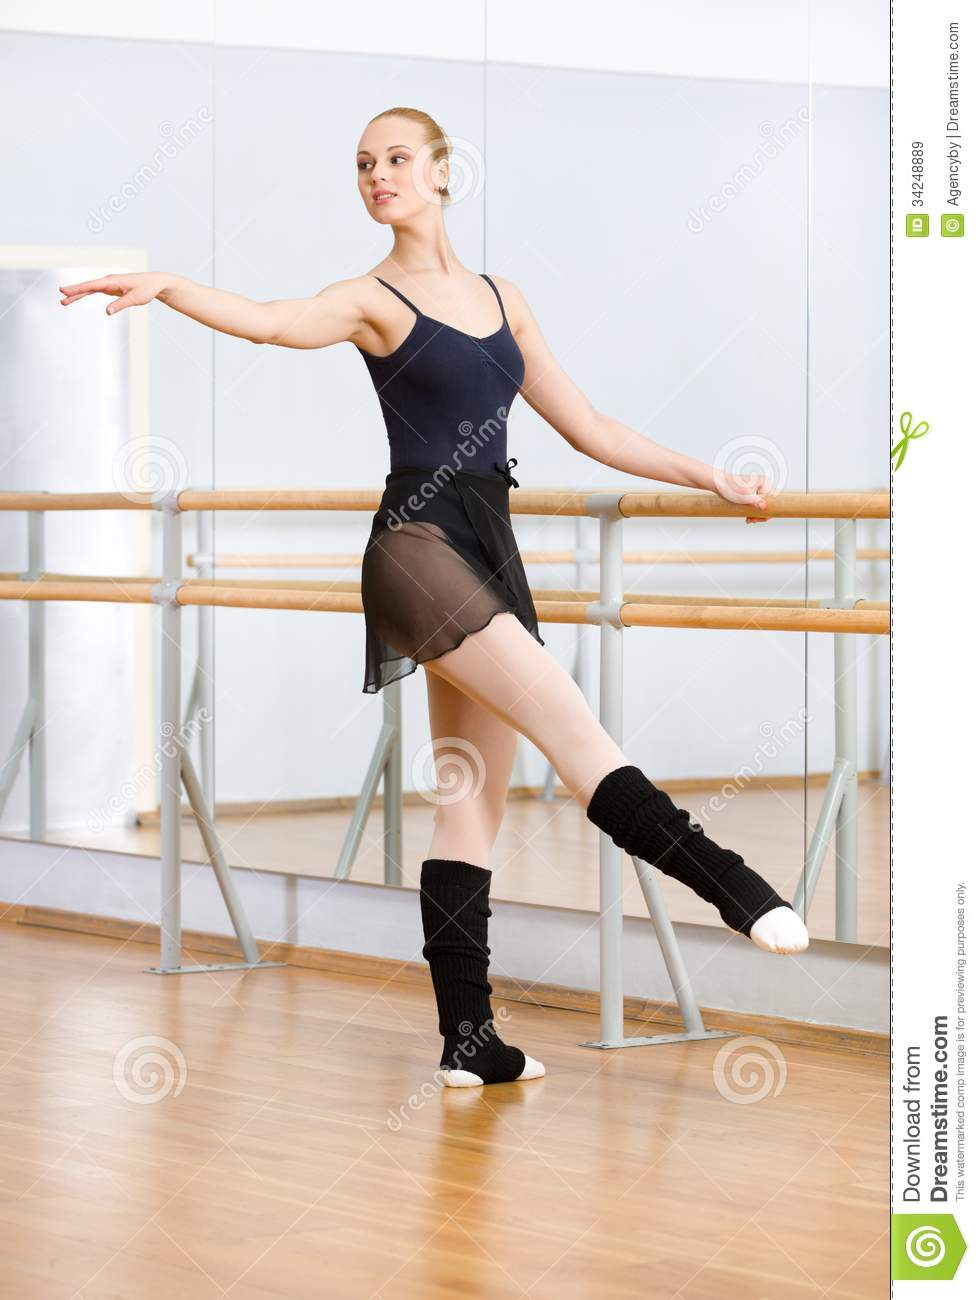 Female Ballet Dancer Dancing Near Barre In Studio Royalty